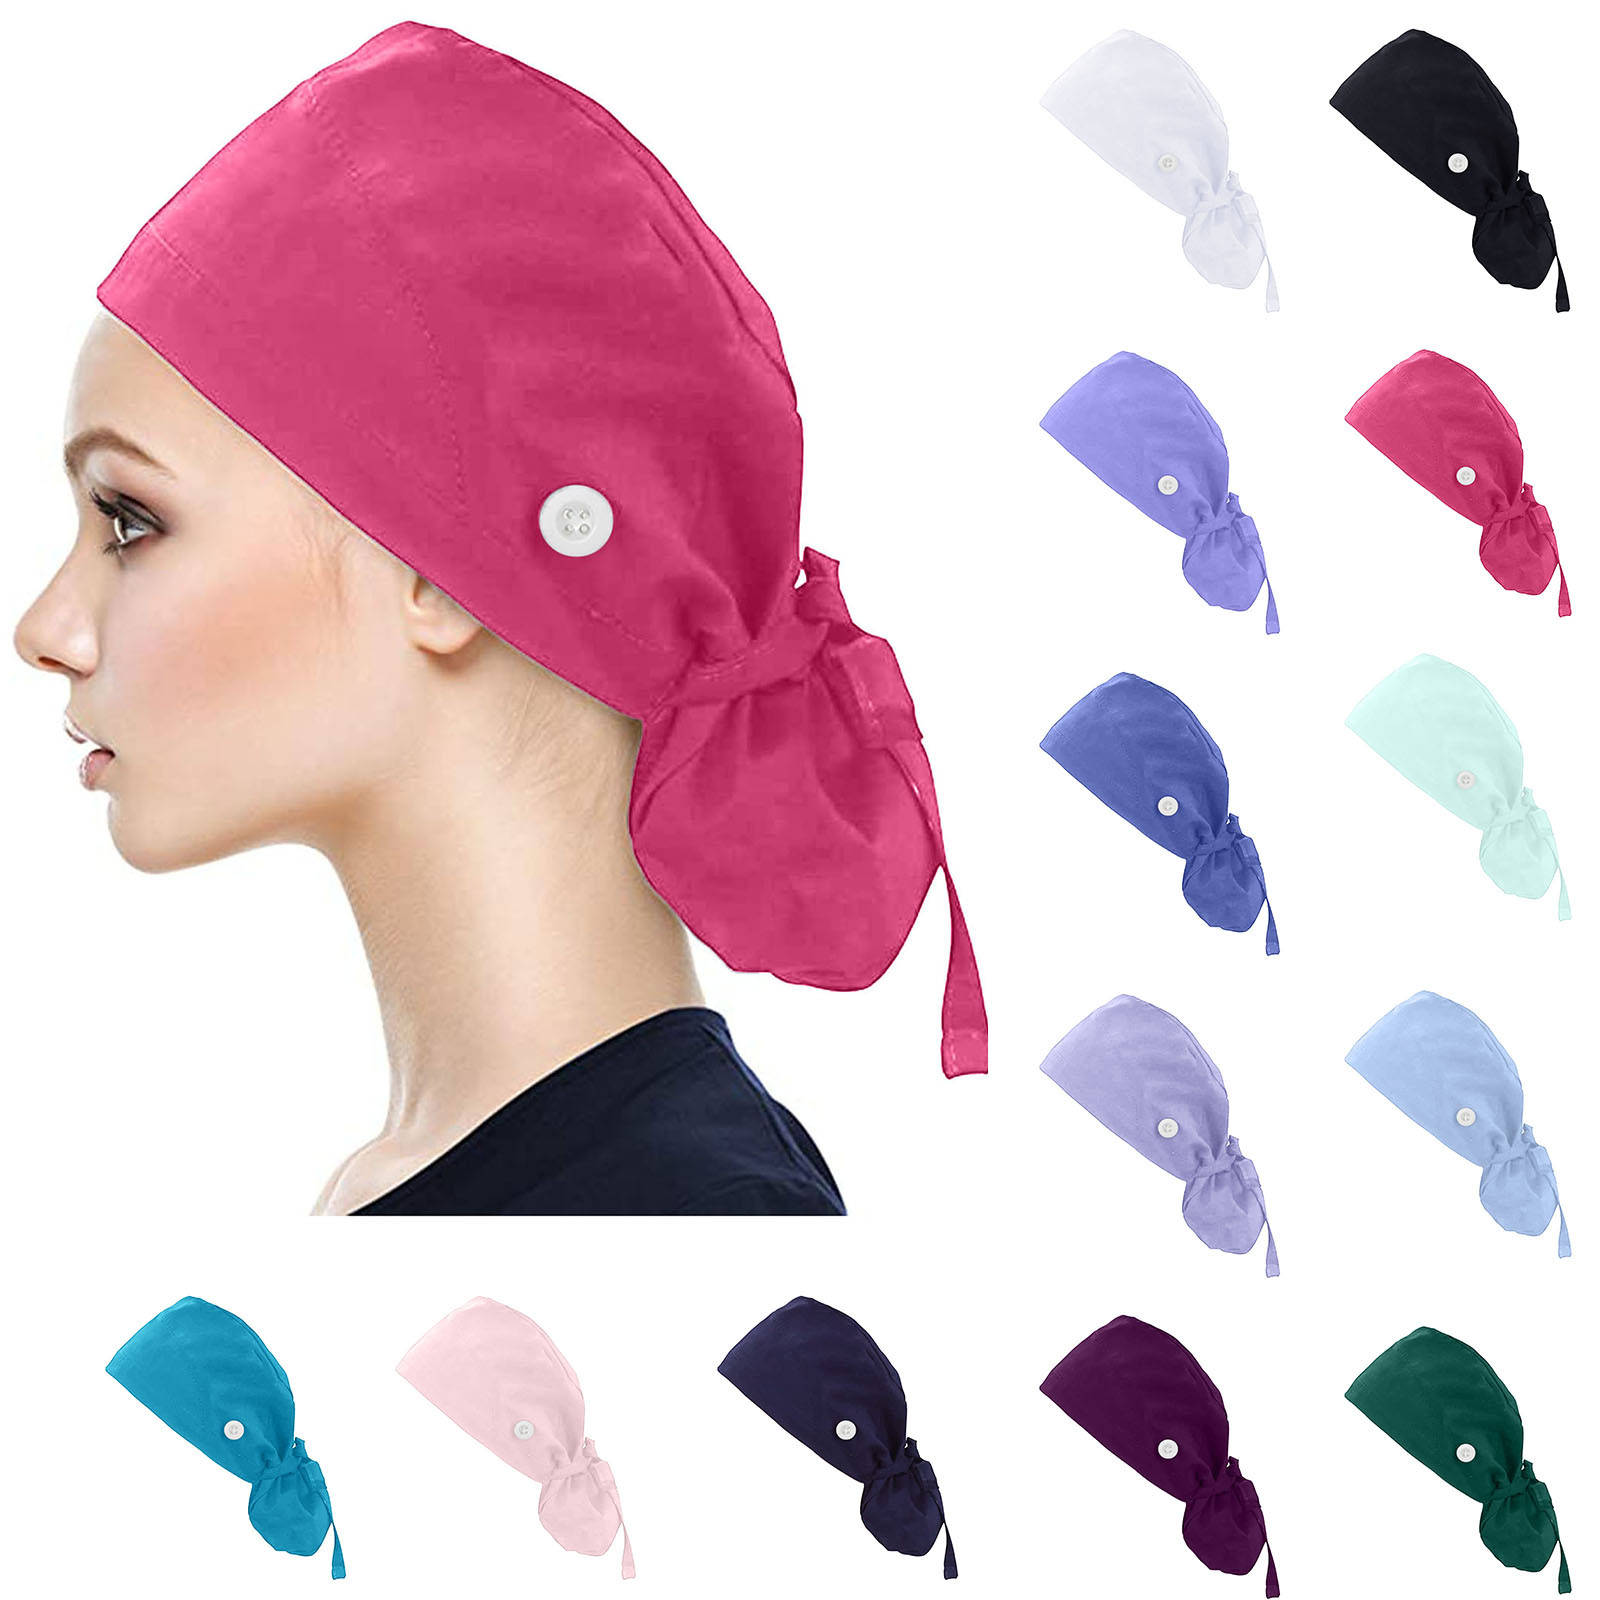 Unisex Nurse Hats For Women Cotton Hat Solid Color Scrubs Cap Nurse Accessories Button Bouffant Hat Sweatband Gorro Enfermera L*